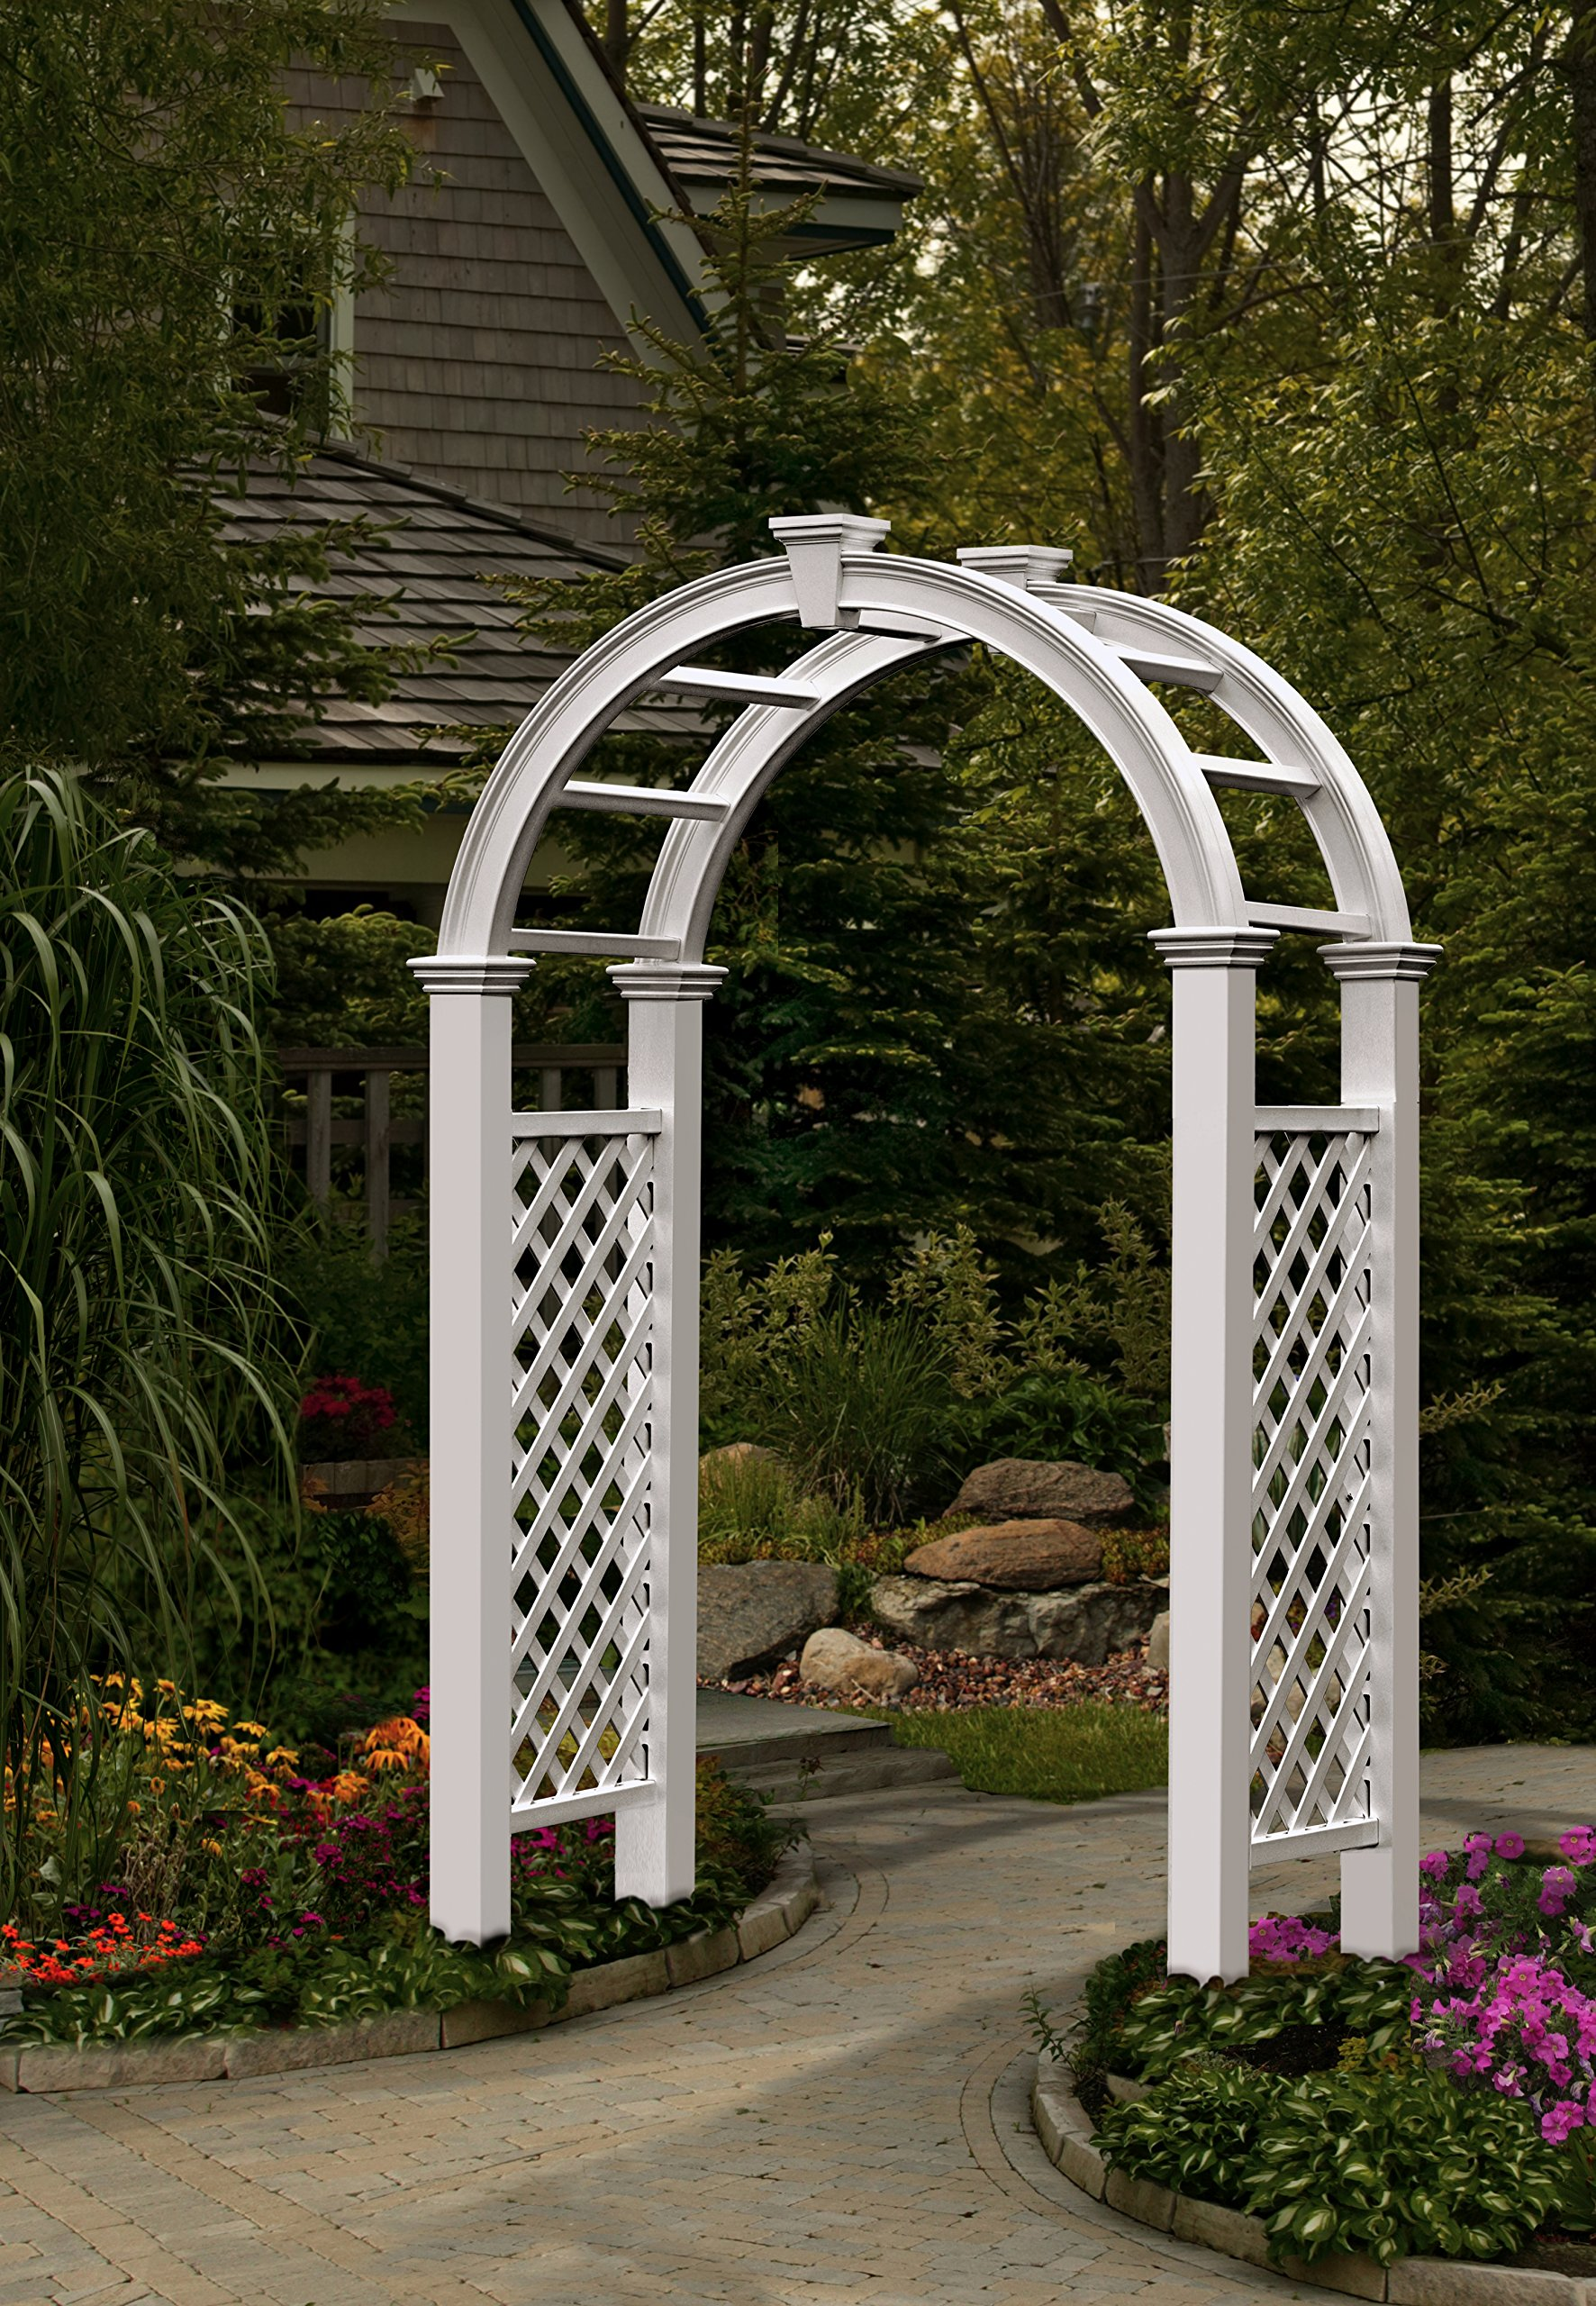 New England Arbors VA84250 Nantucket Legacy Arbor, White (102.25 x 60 x 28 inches) by New England Arbors